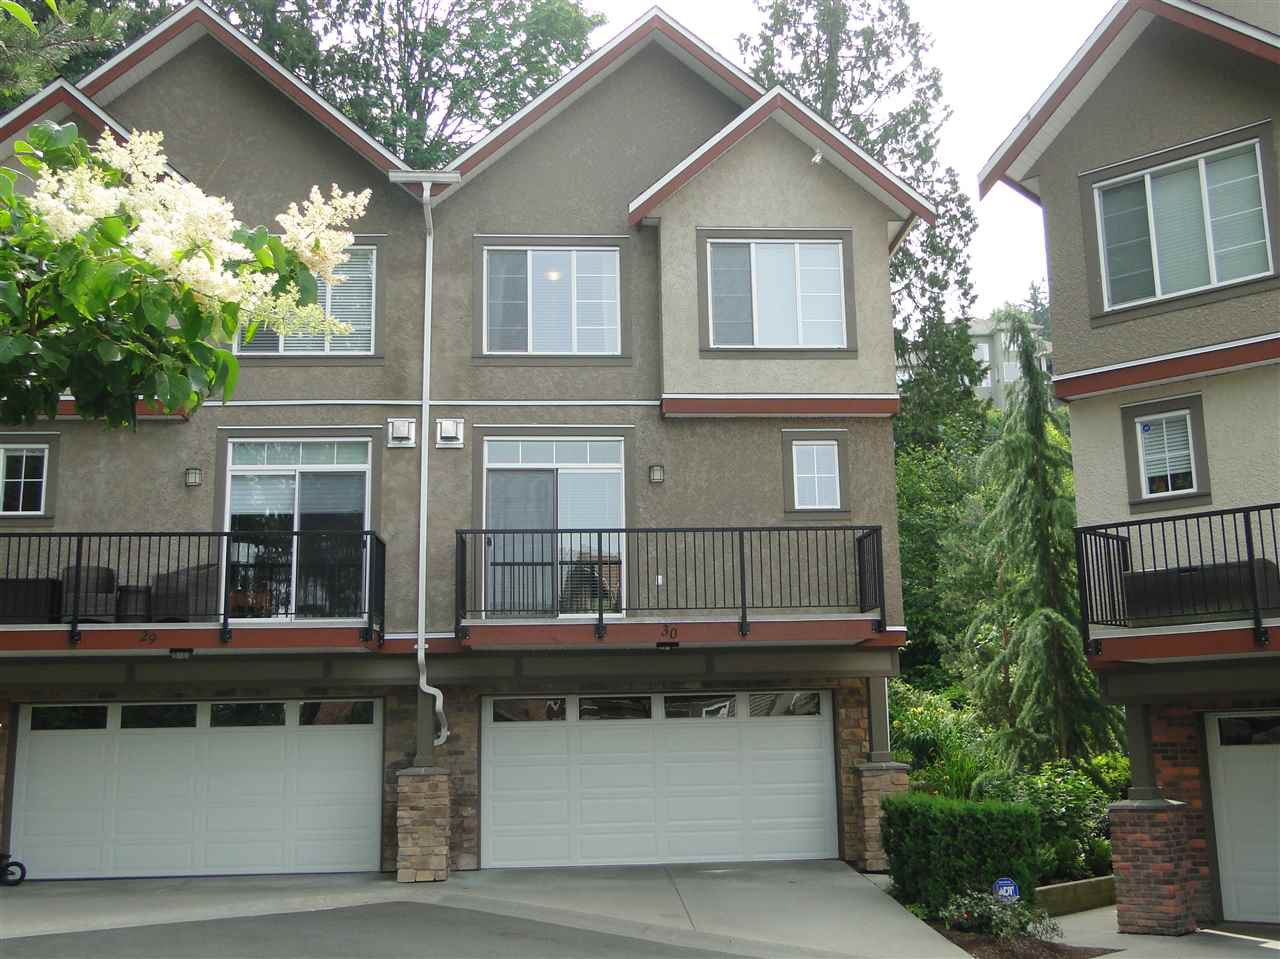 """Photo 1: Photos: 30 35626 MCKEE Road in Abbotsford: Abbotsford East Townhouse for sale in """"Ledgeview Villas"""" : MLS®# R2075472"""